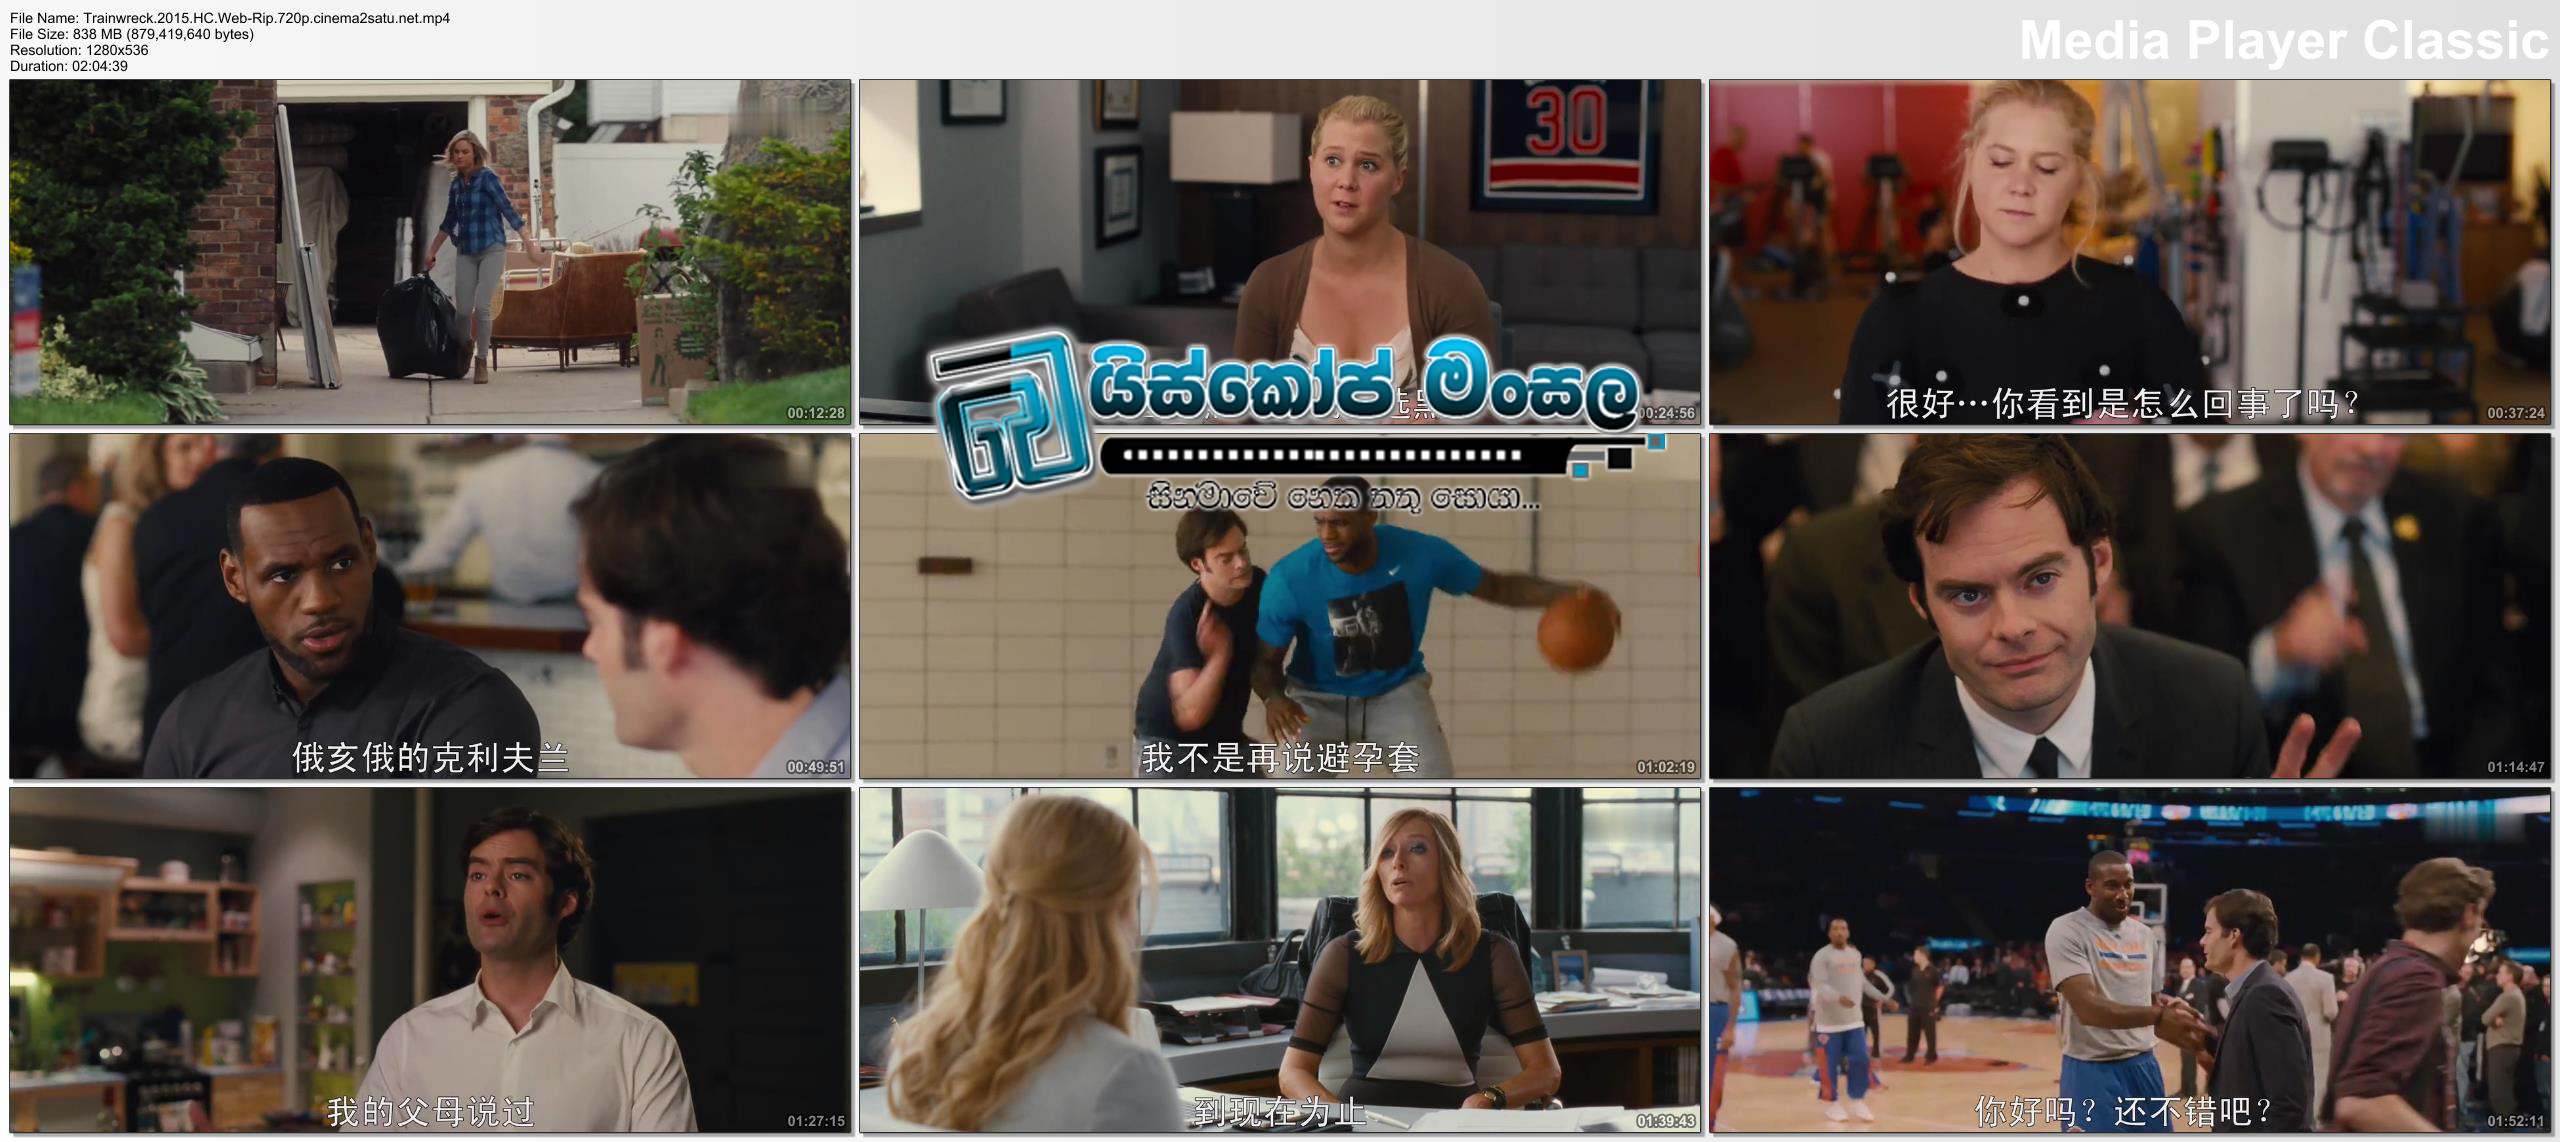 Trainwreck.2015.HC.Web-Rip.720p.cinema2satu.net.mp4_thumbs_[2015.07.31_00.05.13]